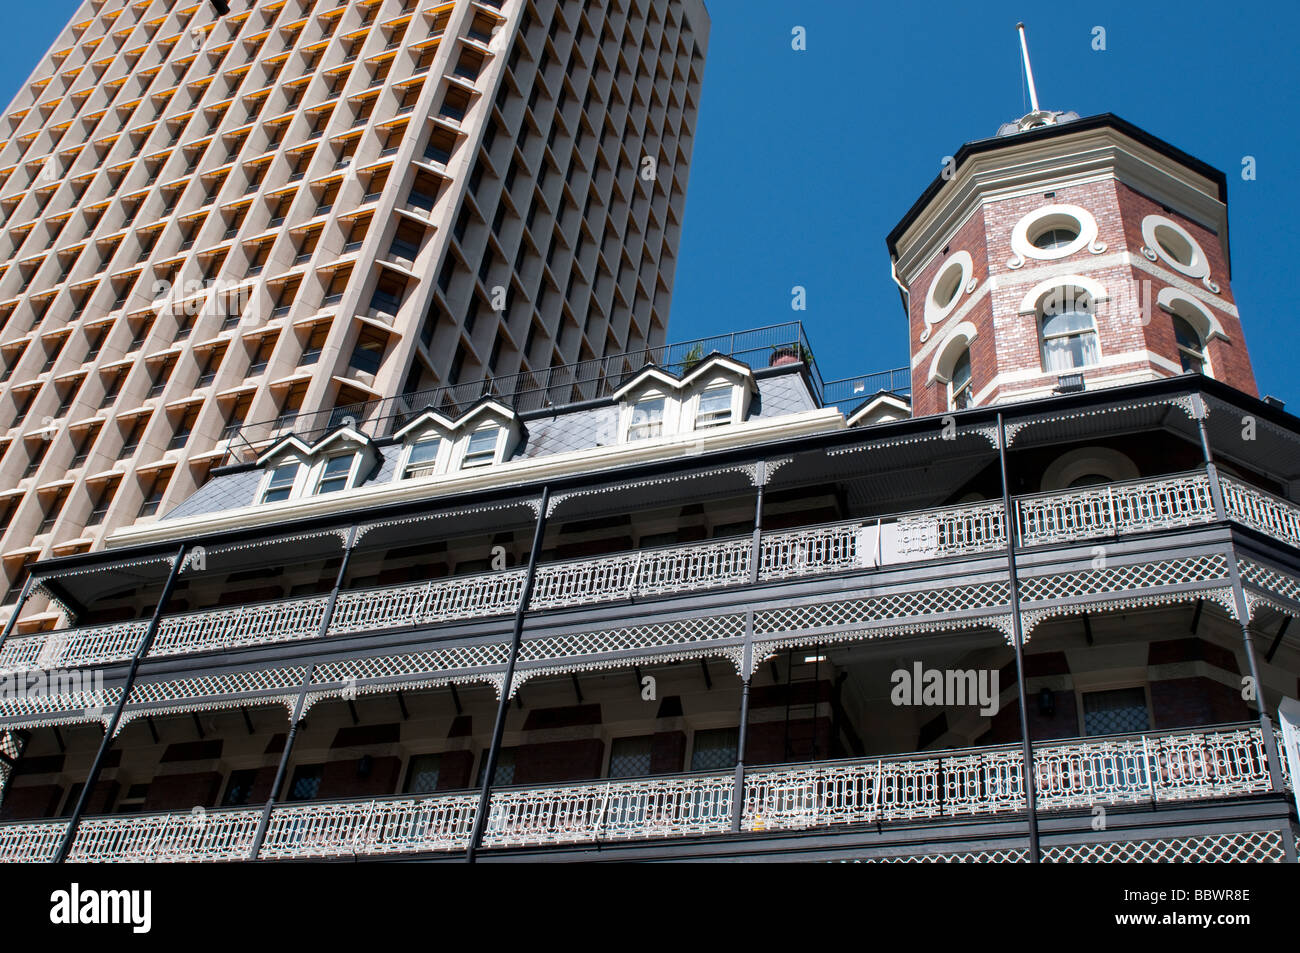 People's Palace Hotel (Heritage Building) contrasting with a modern high rise block, Brisbane Queensland Australia - Stock Image